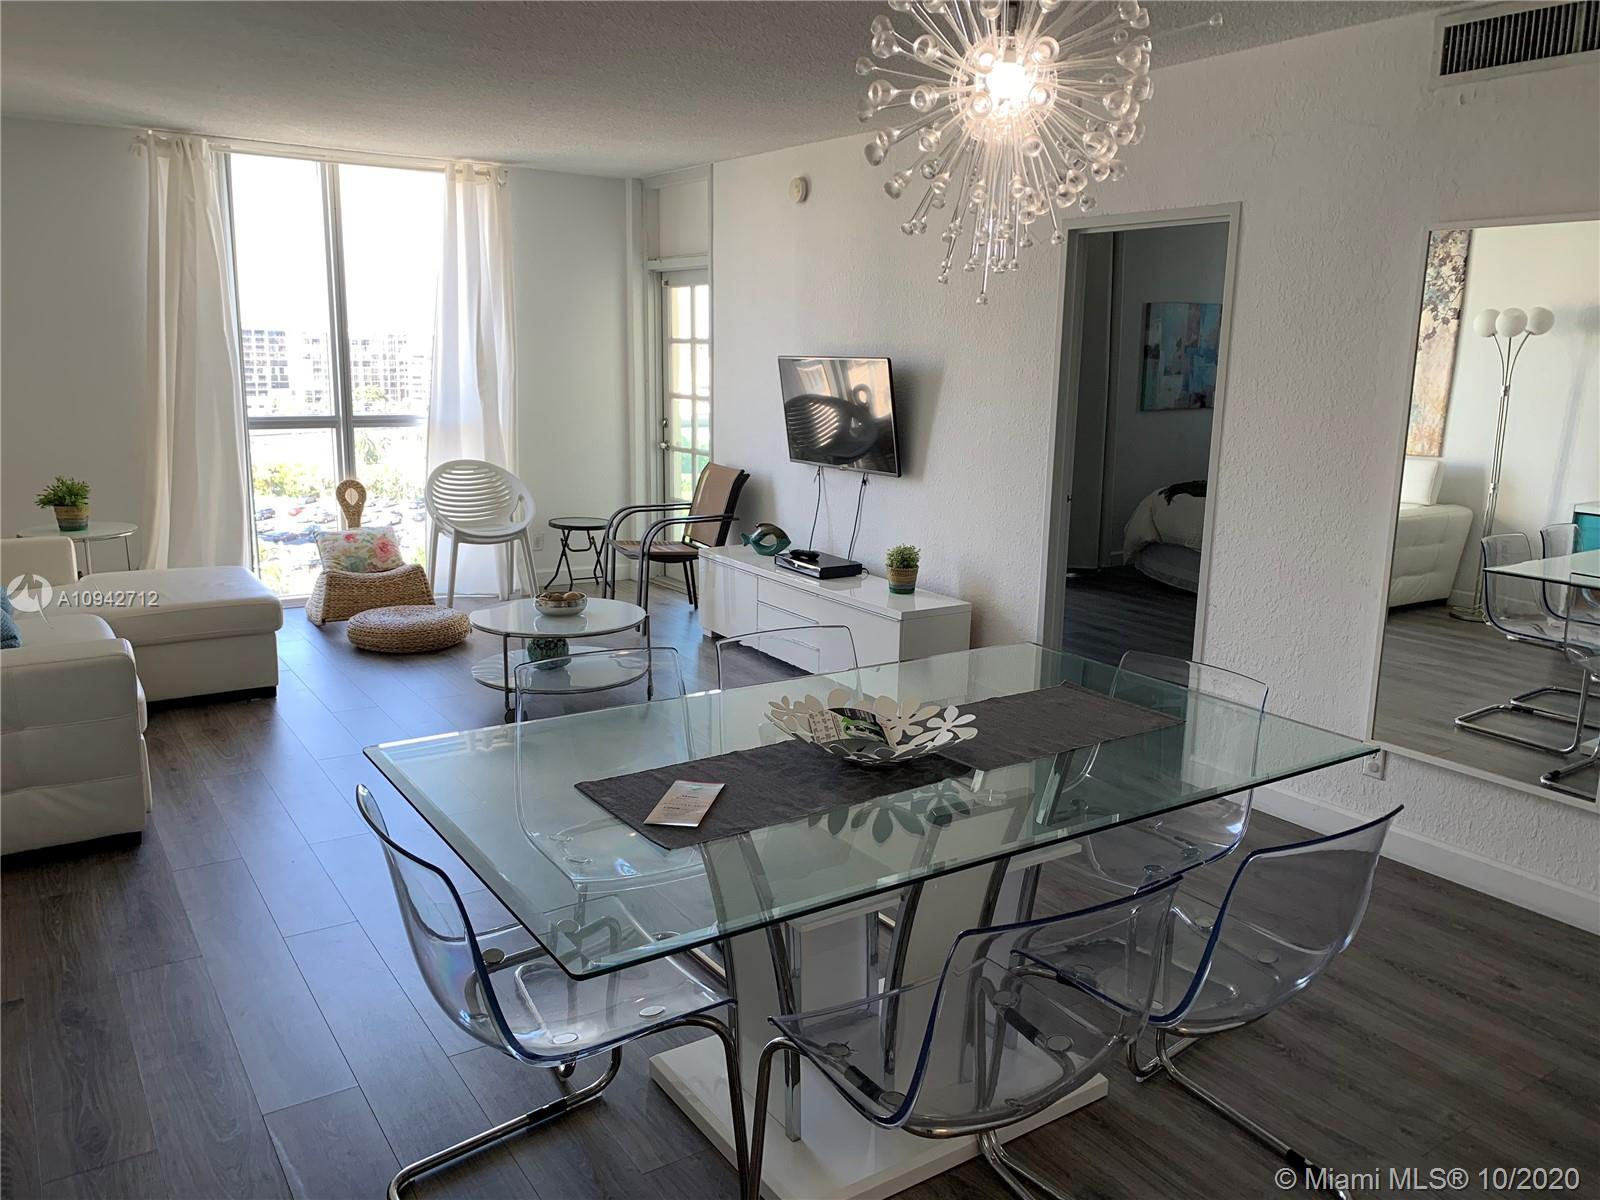 Nice 2 bed 2 bath fully furnished ready for occupancy with upgraded floors and kitchen. All inclusiv